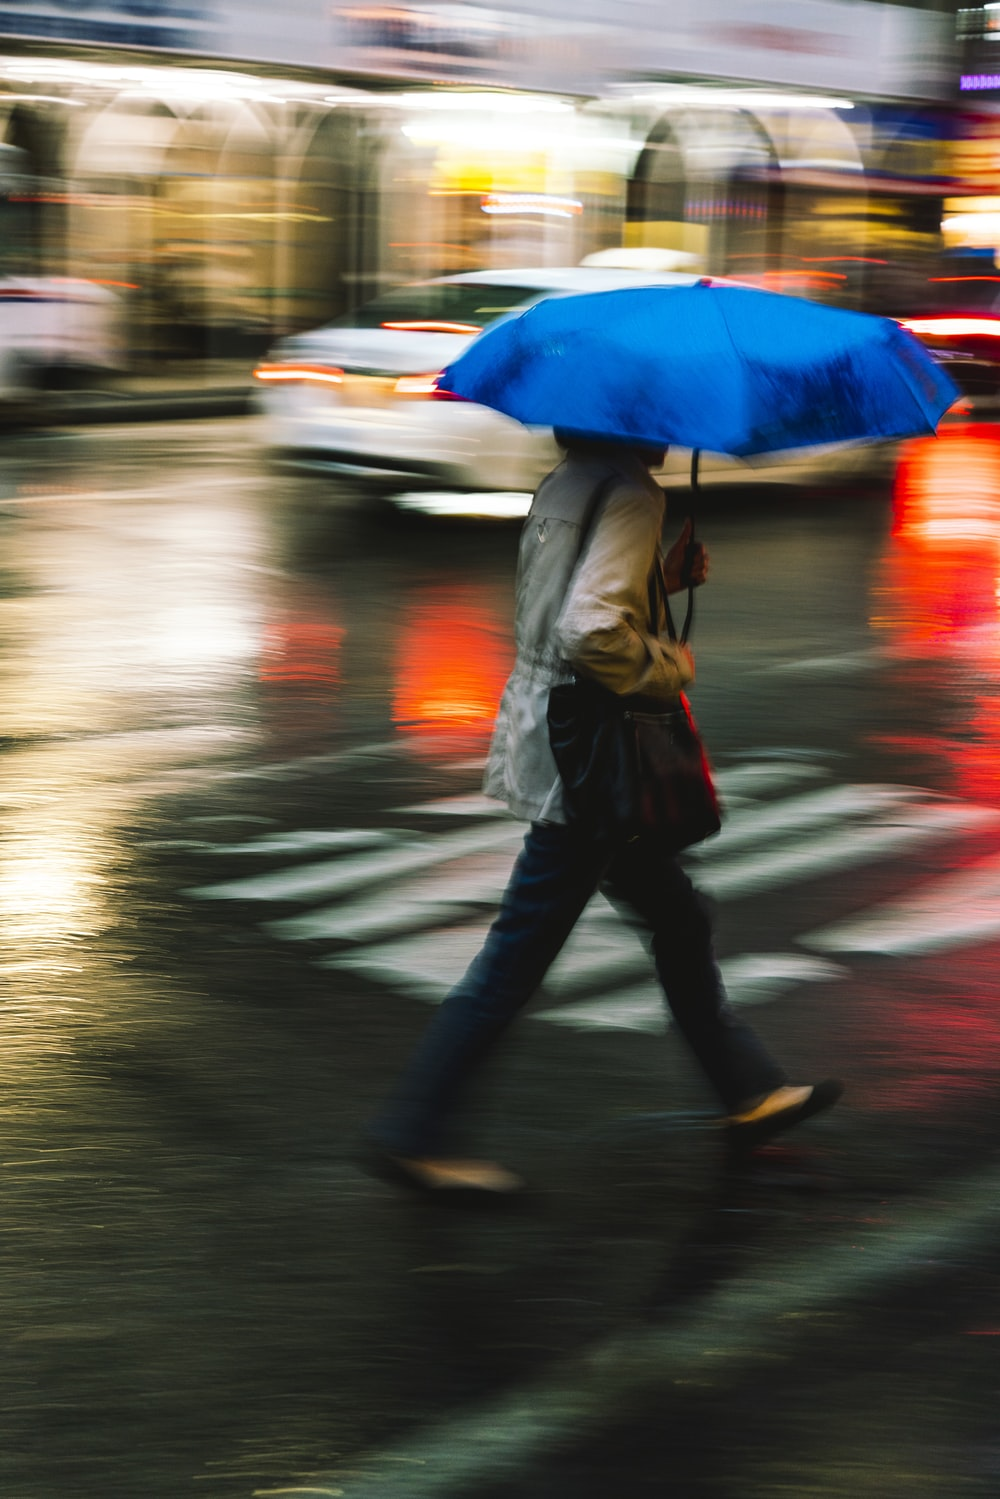 person walking on pedestrian lane while holding umbrella